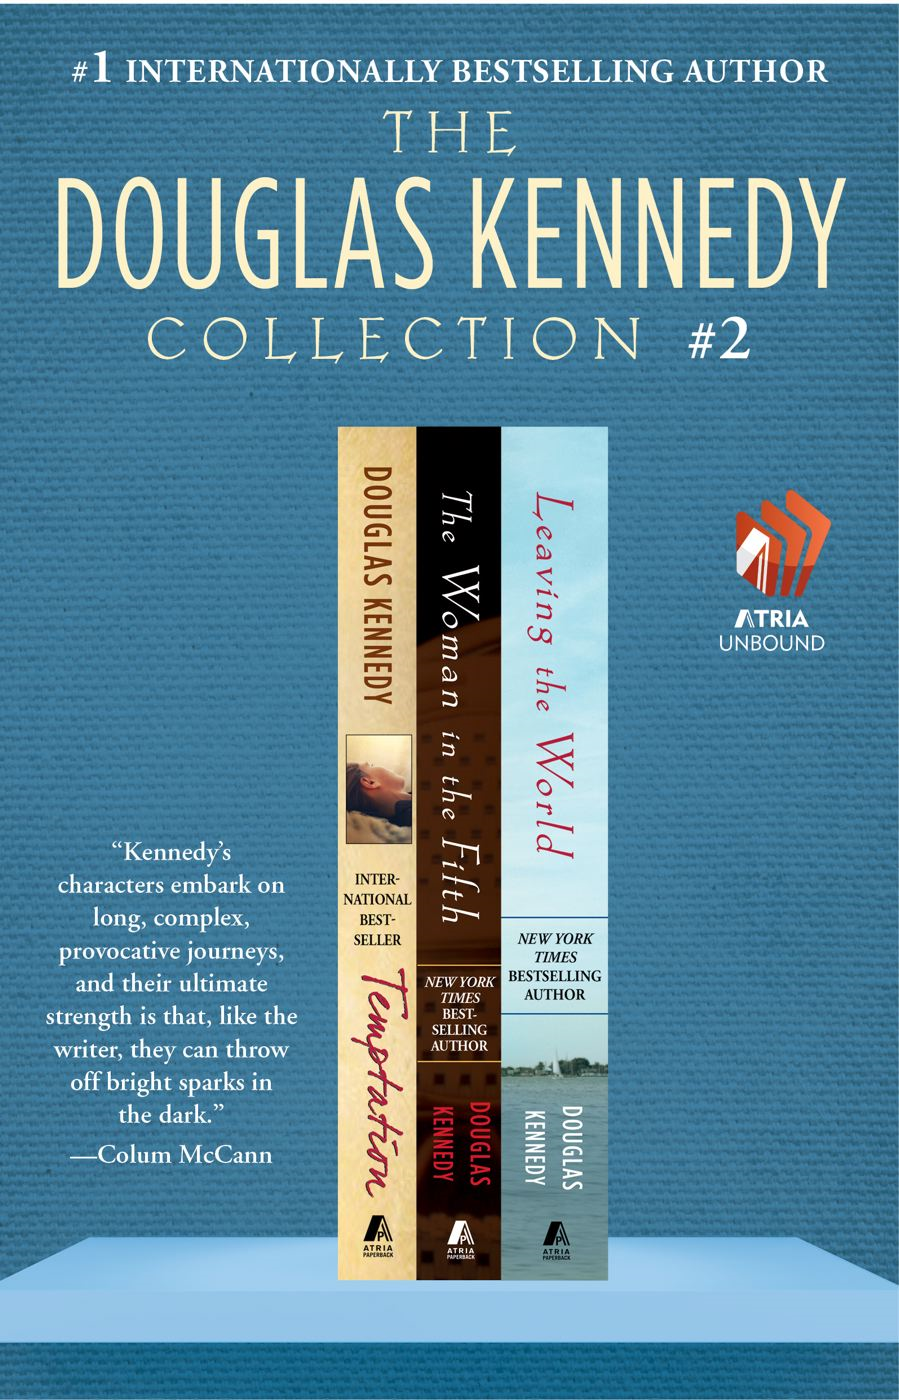 The Douglas Kennedy Collection #2